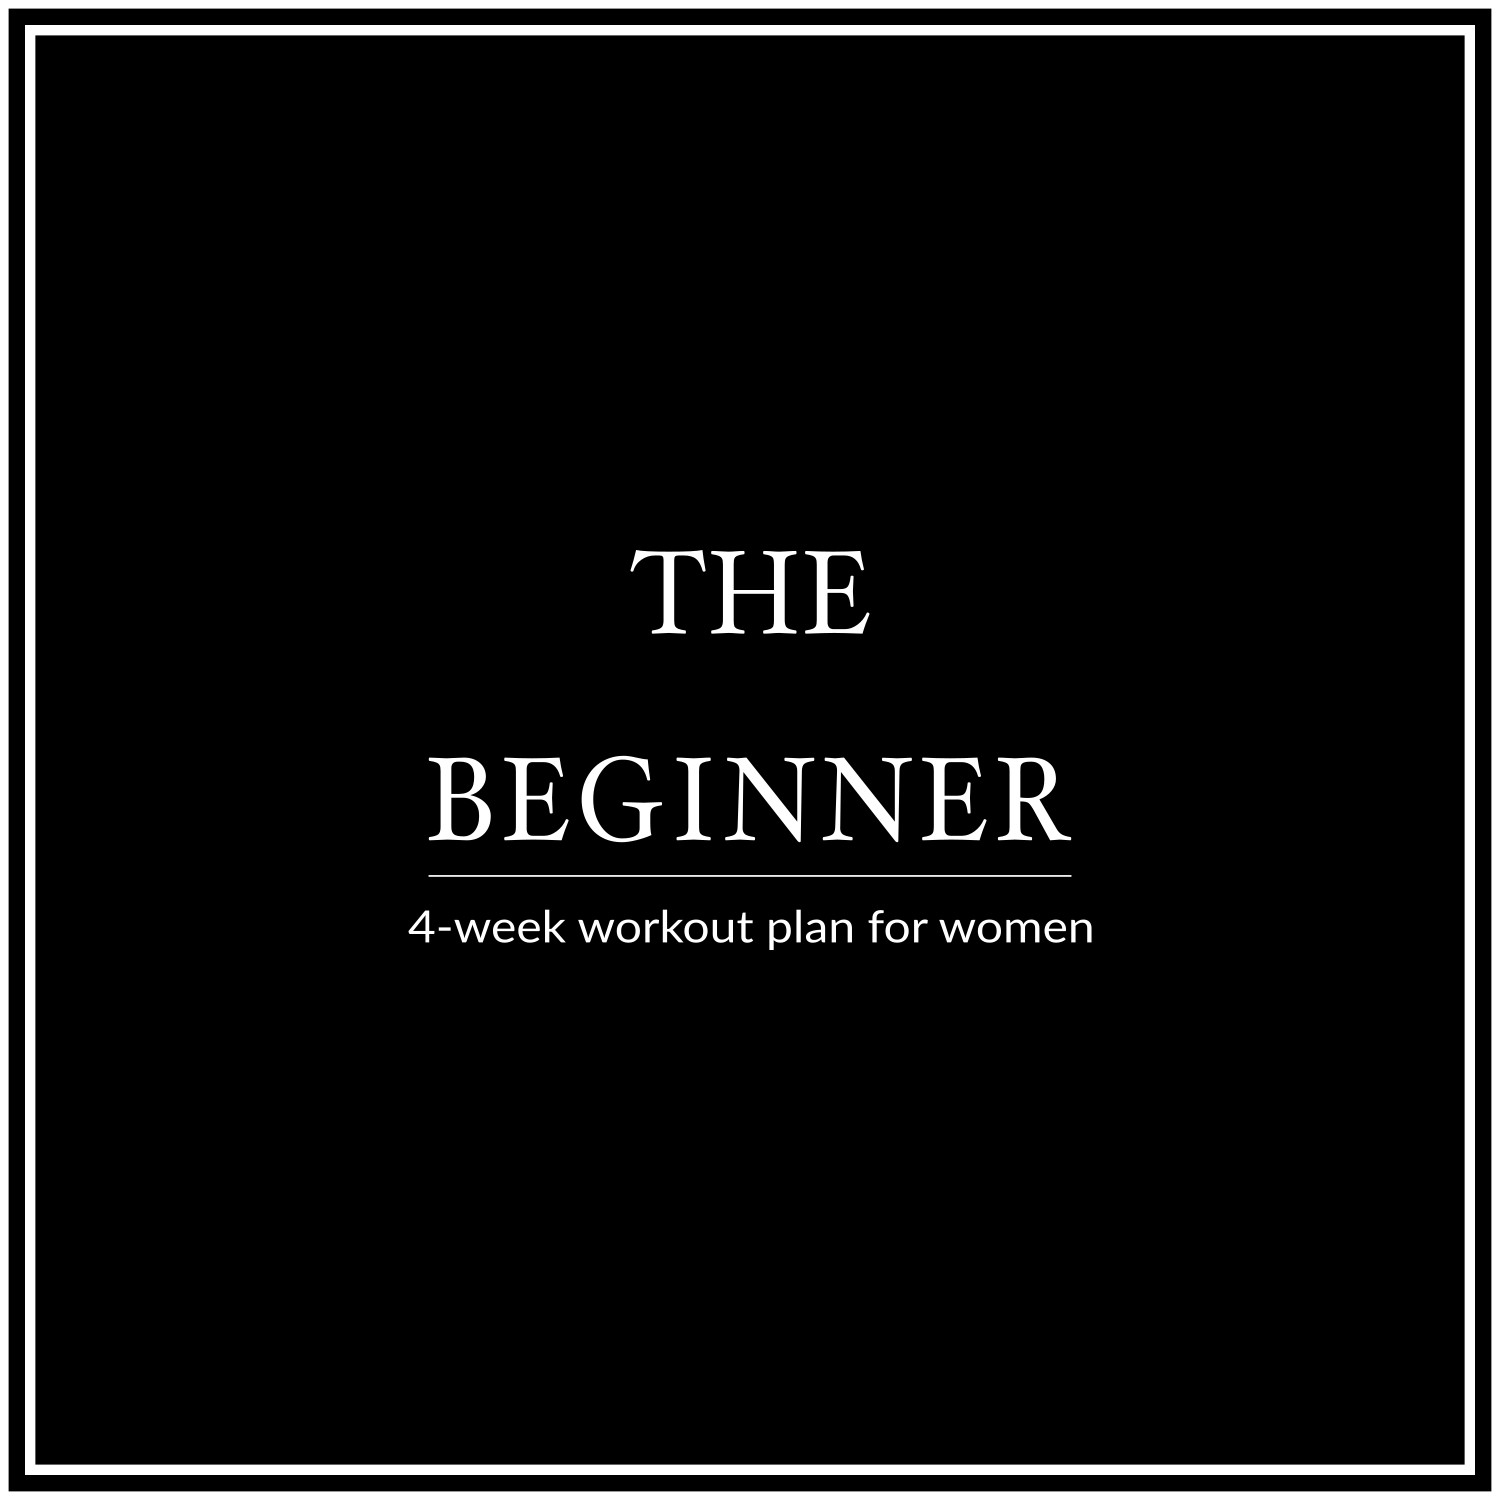 4-Week Beginner Workout Plan For Women